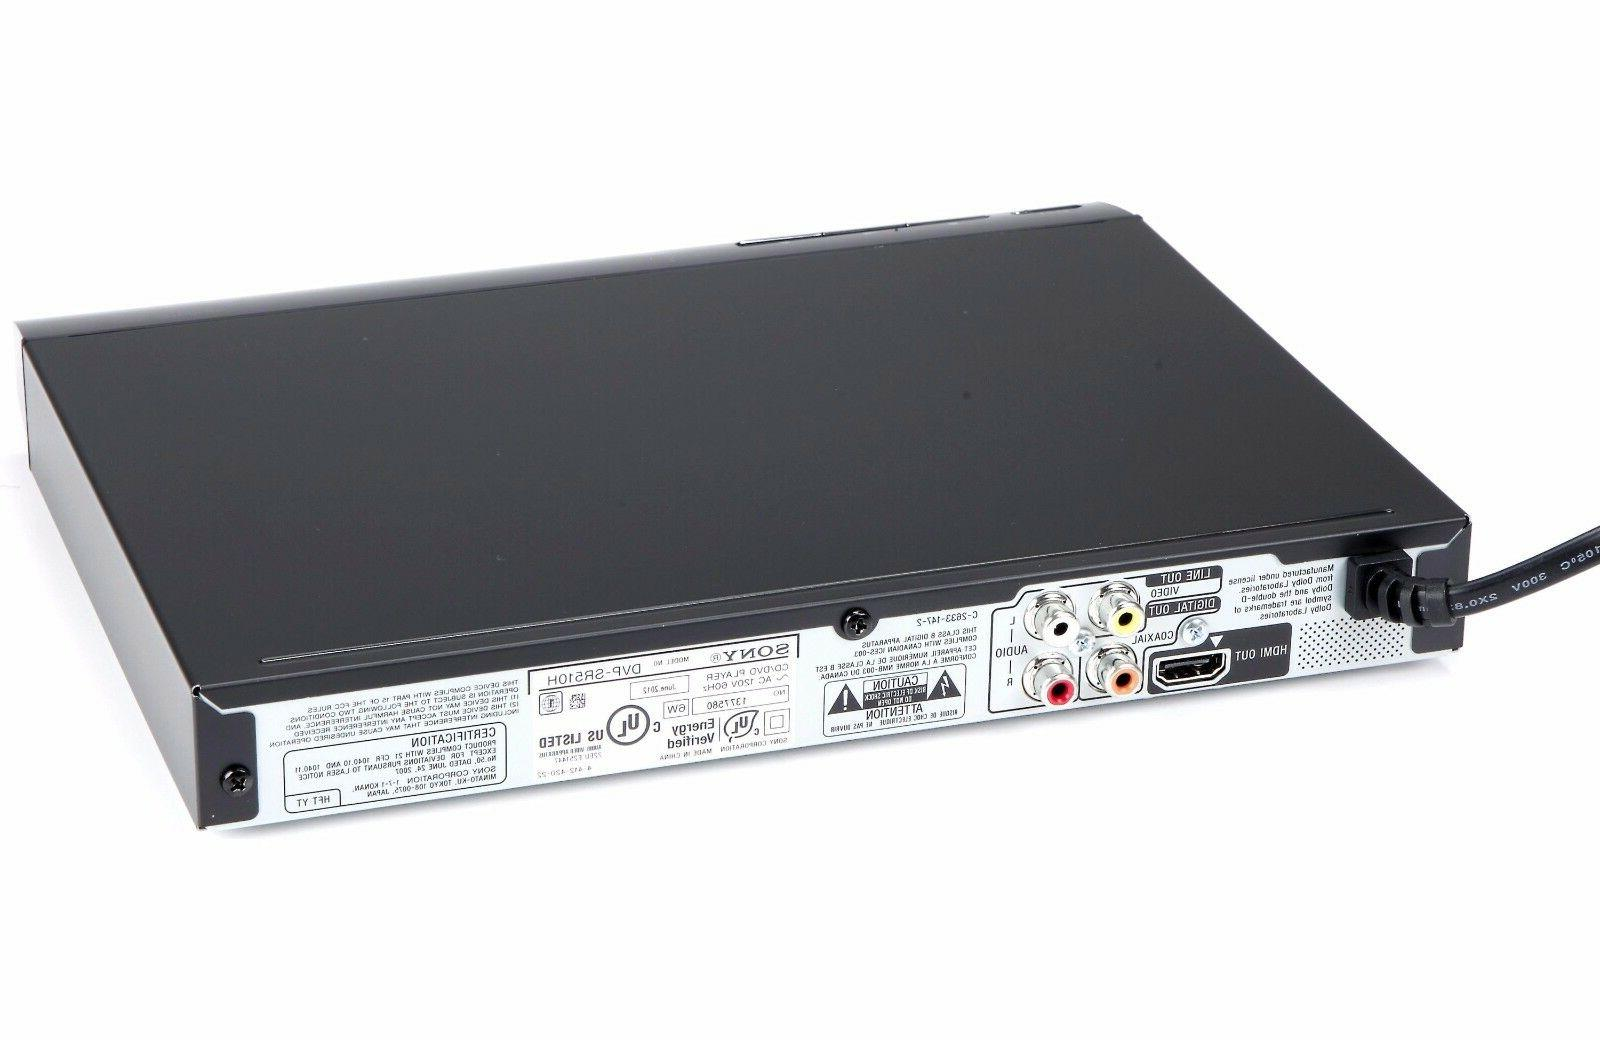 Sony 1080p Full Upscaling Multi-format Player w/ HDMI | DVP-SR510